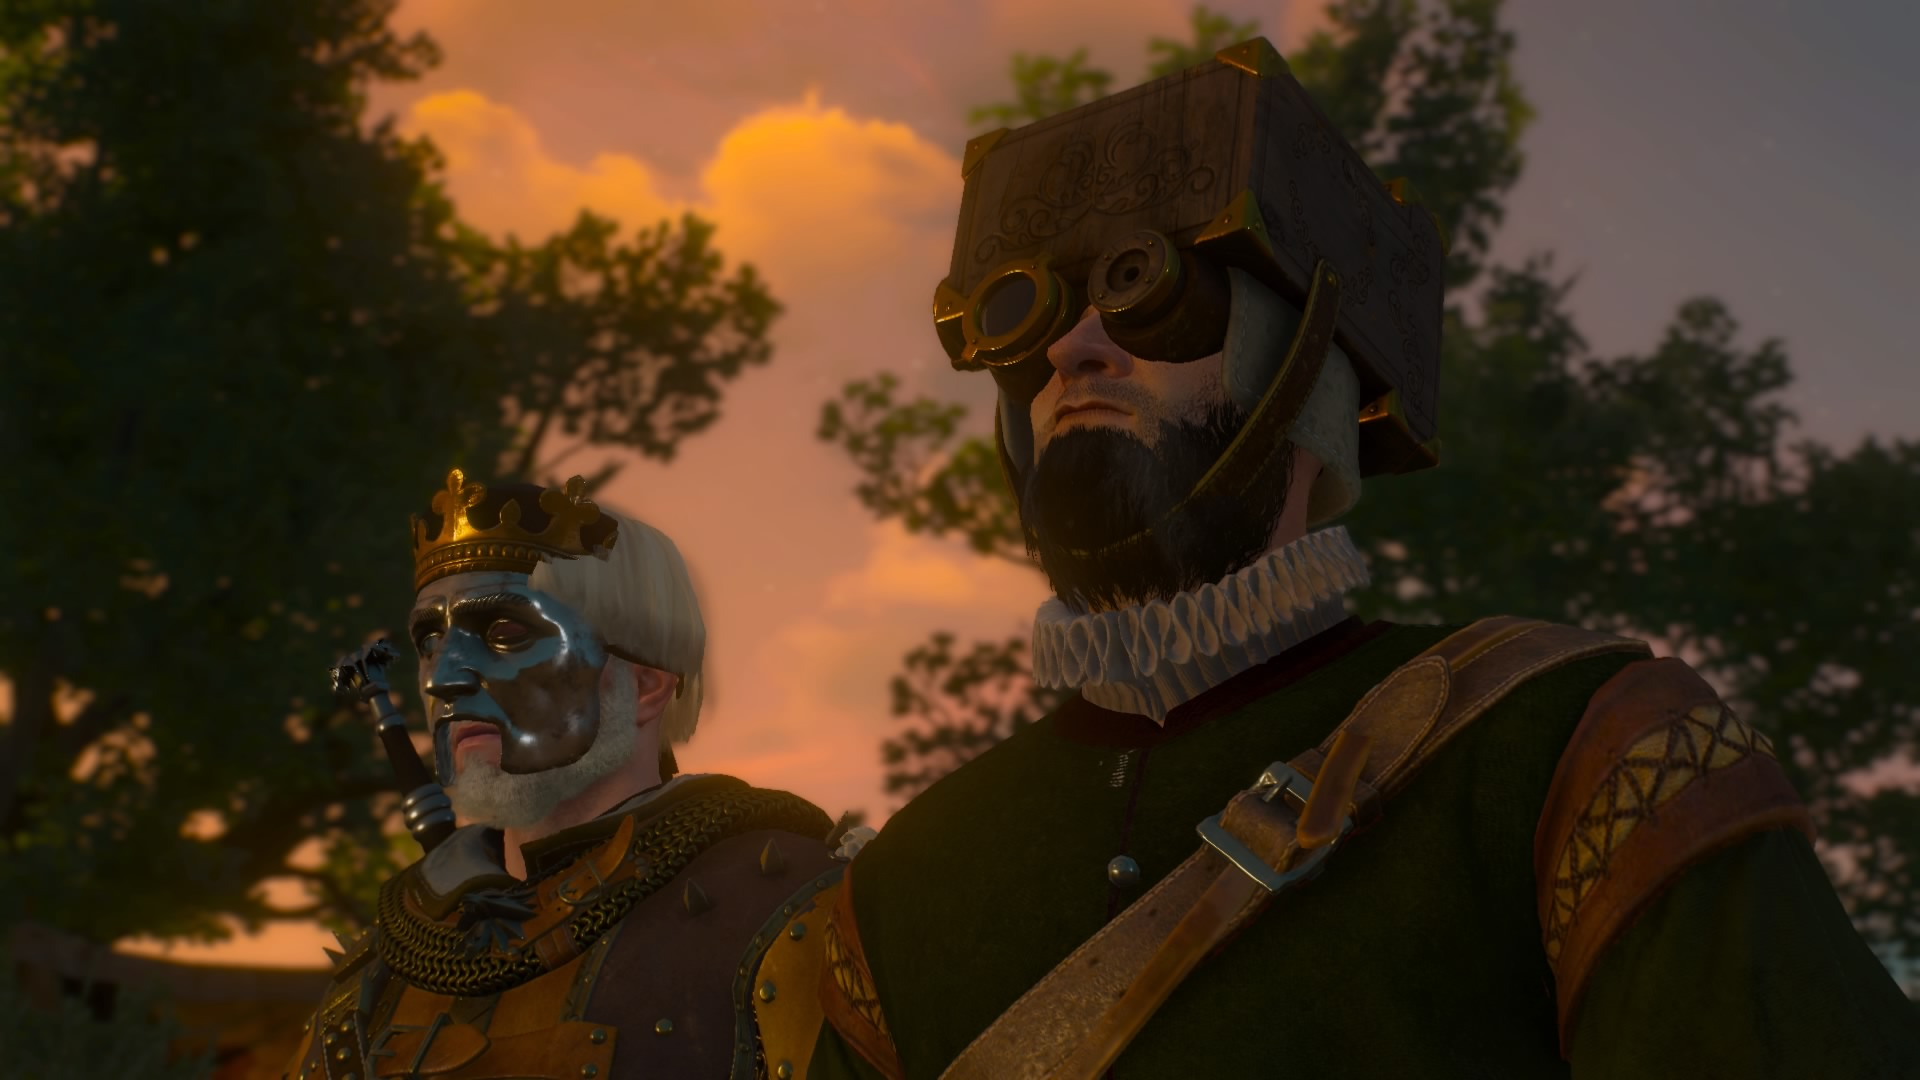 In the Duchy of Toussaint, Geralt in his Pierrot-like armour blends into the crowd. Dyes may be used to accentuate the clown-like, and sometimes corpulent, quality of all witcher gear.